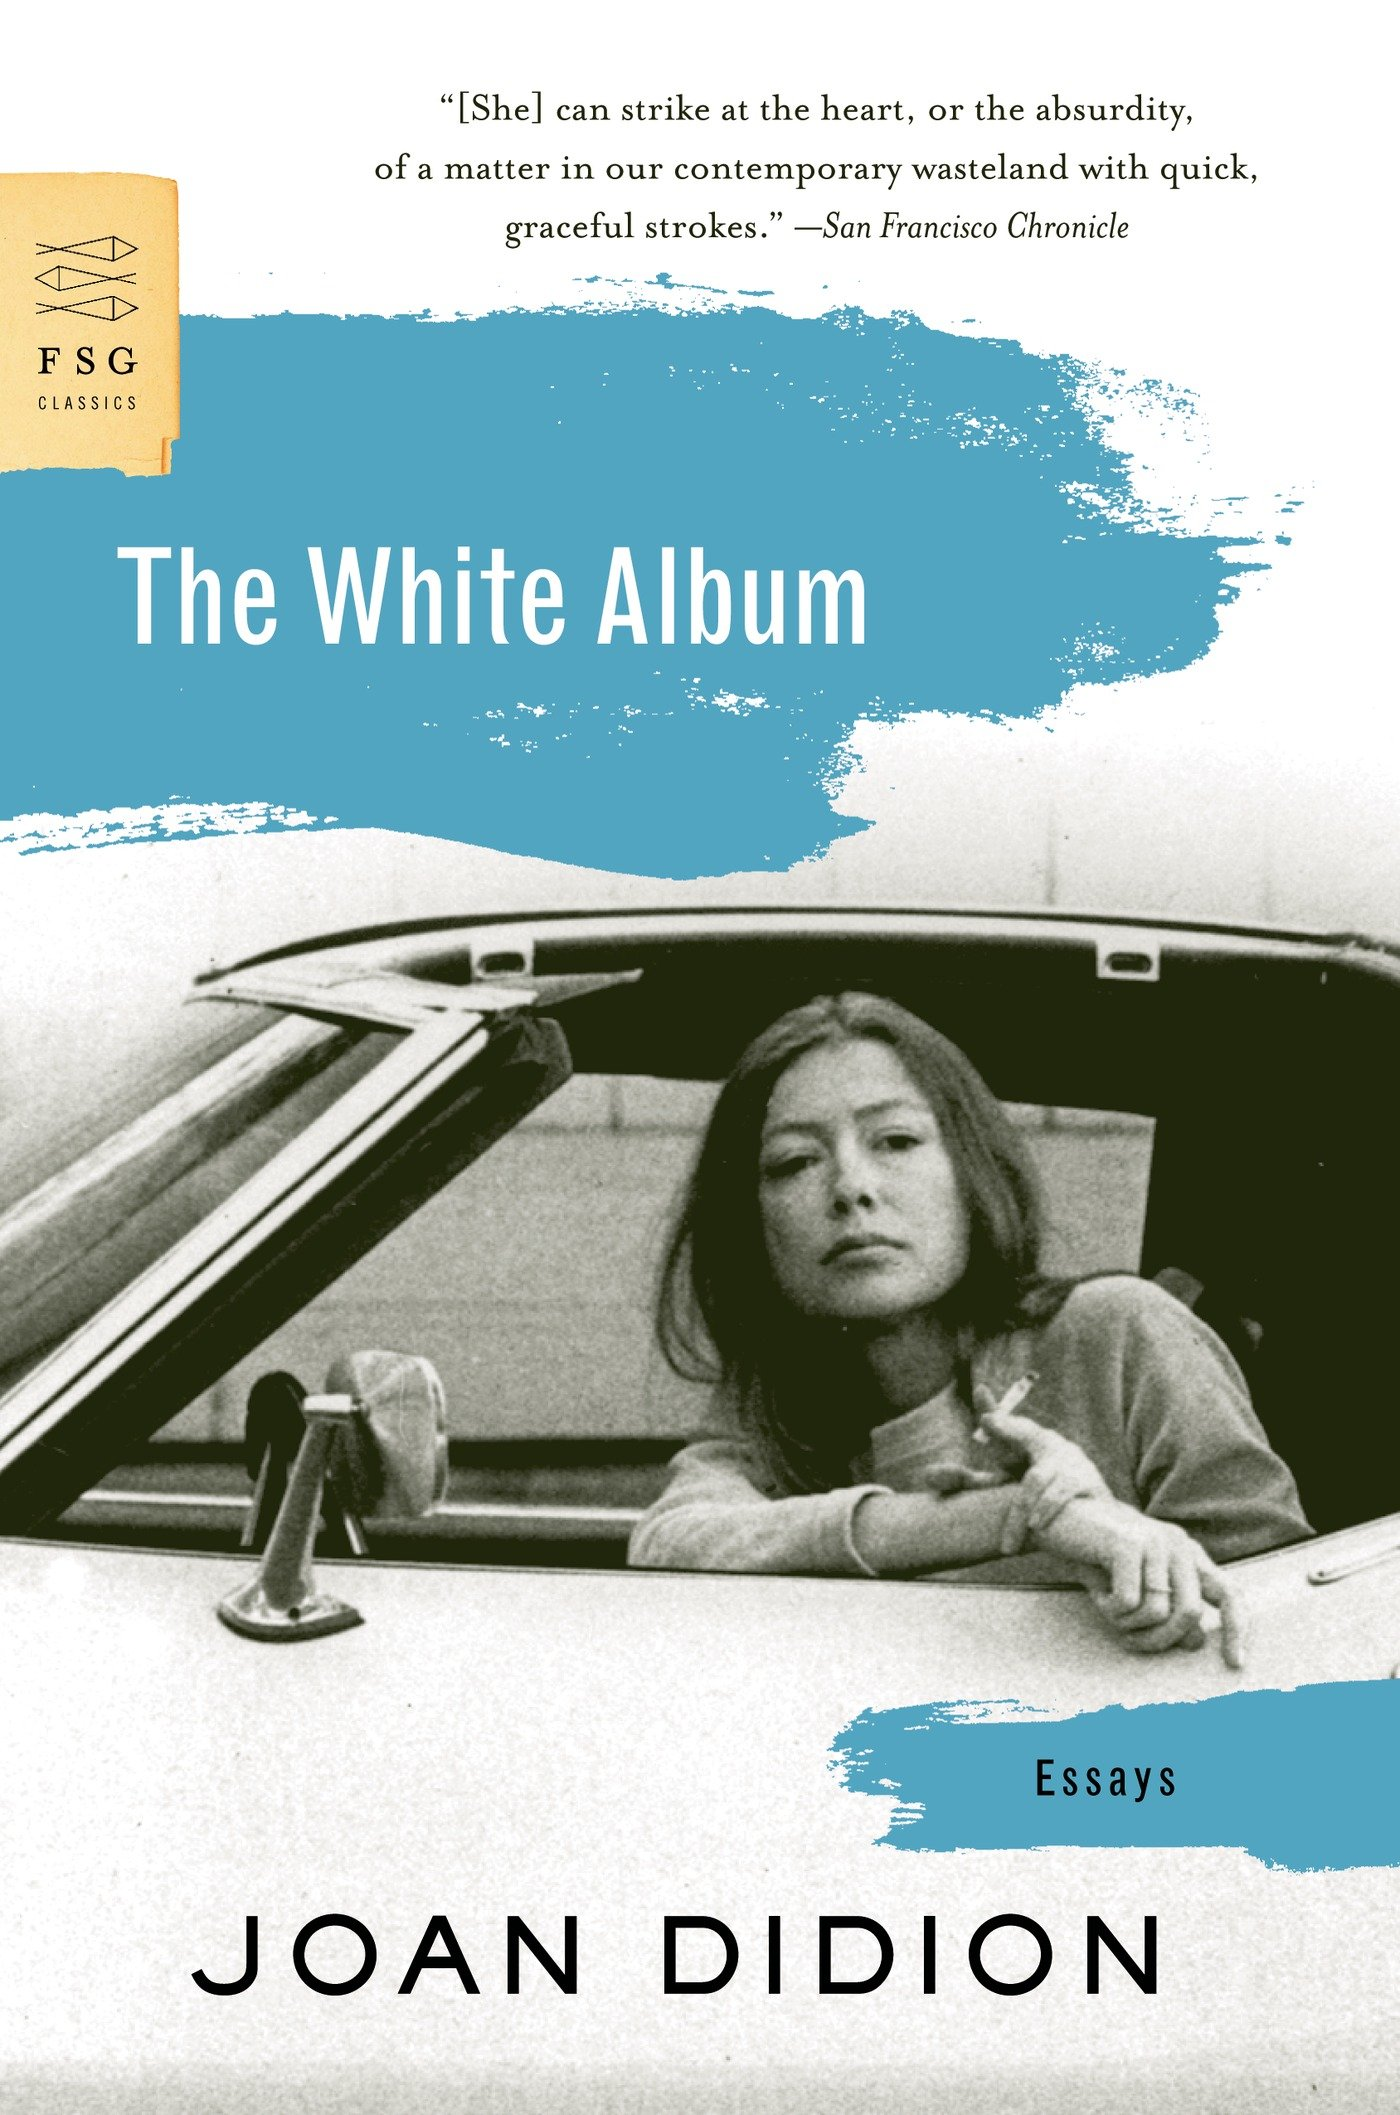 the white album essays fsg classics joan didion  the white album essays fsg classics joan didion 8601300241104 com books